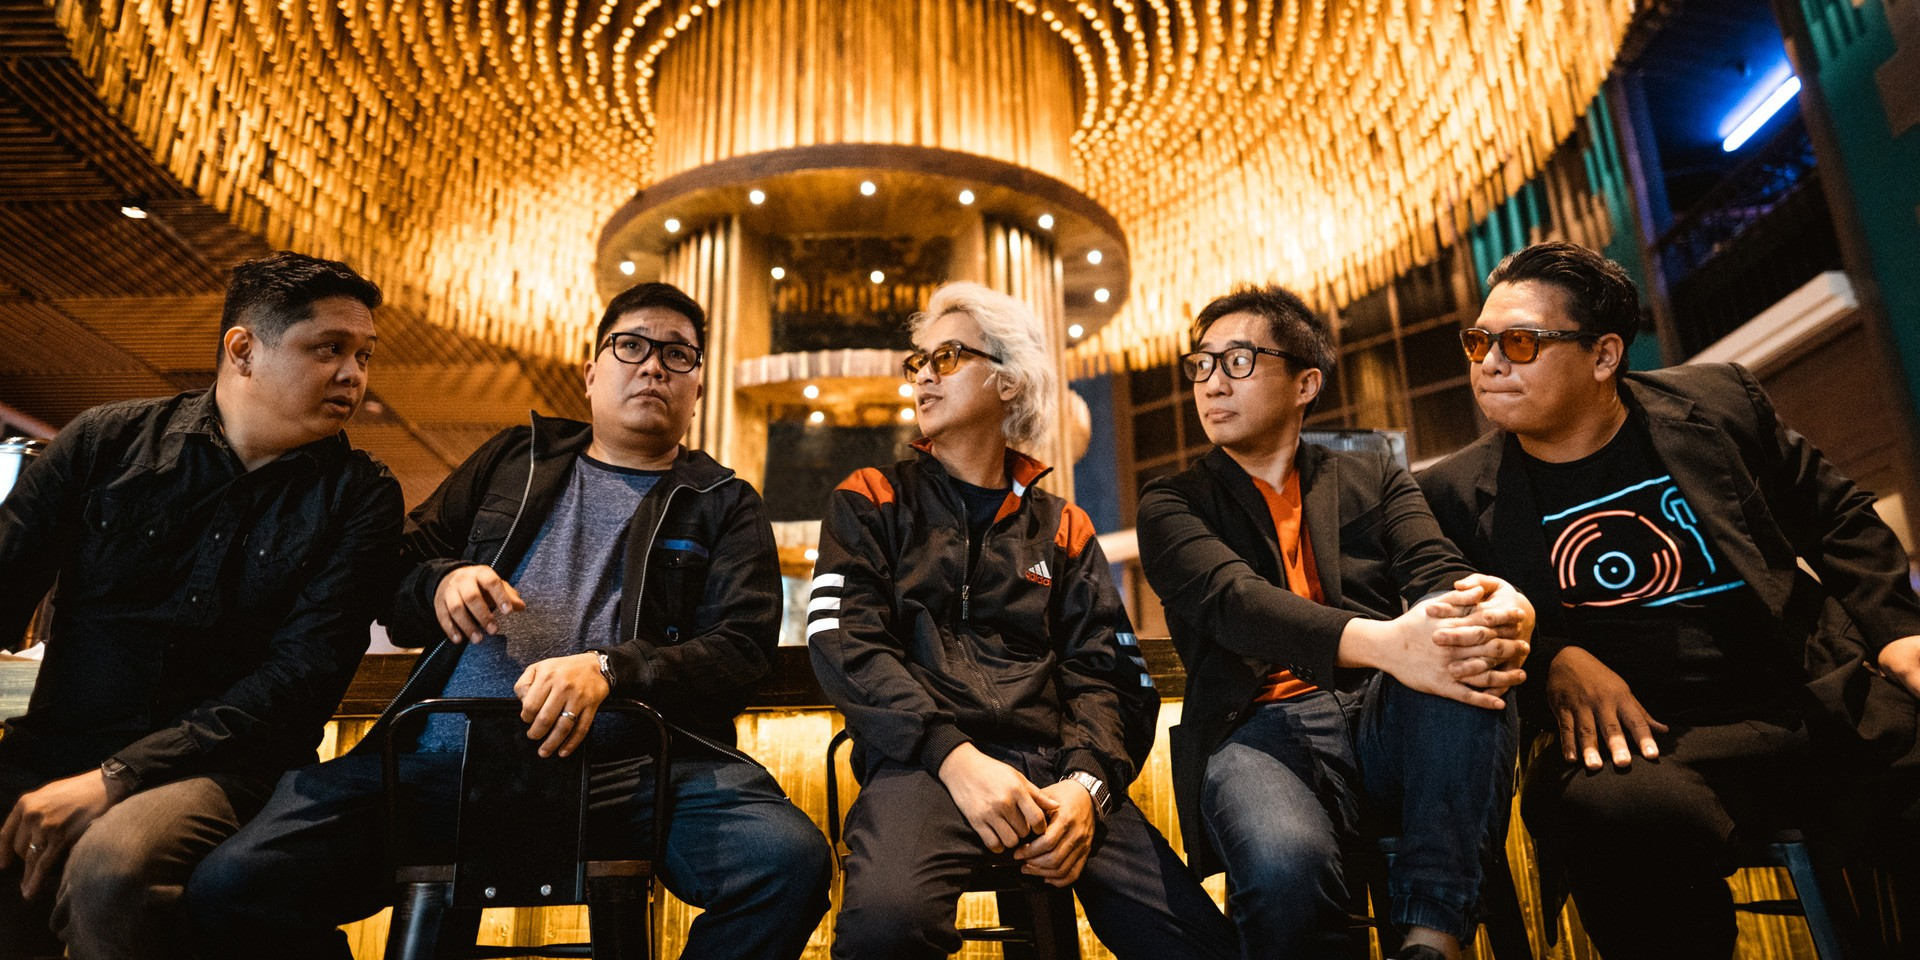 Ely Buendia & The Itchyworms tease new single 'Malinaw na Malabo na Tayo' – listen